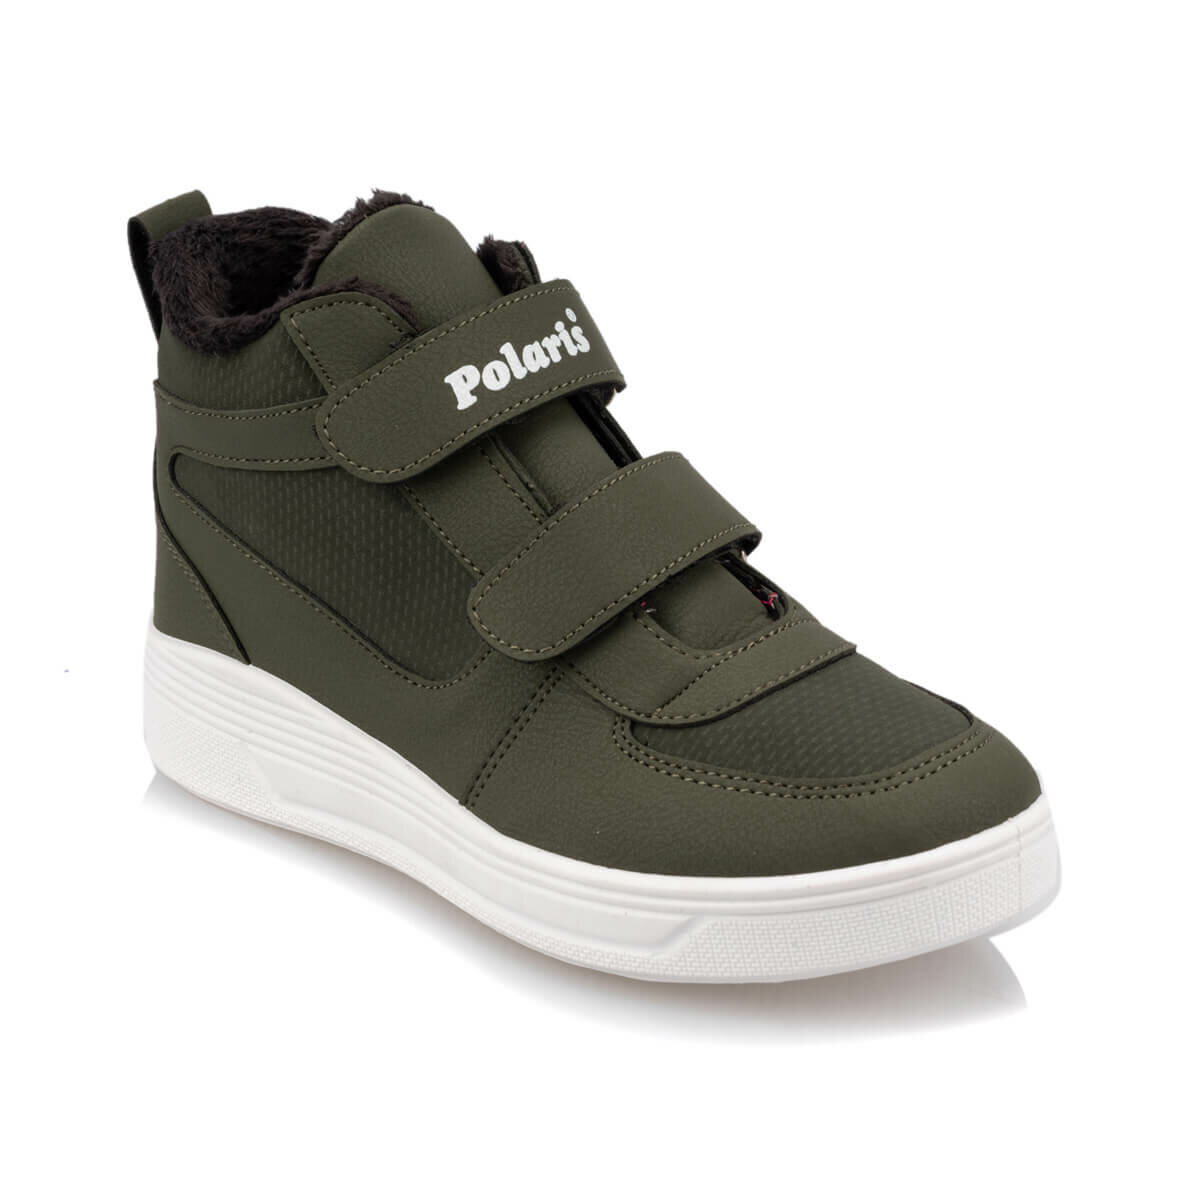 FLO 92.511836.F Khaki Male Child Sneaker Shoes Polaris